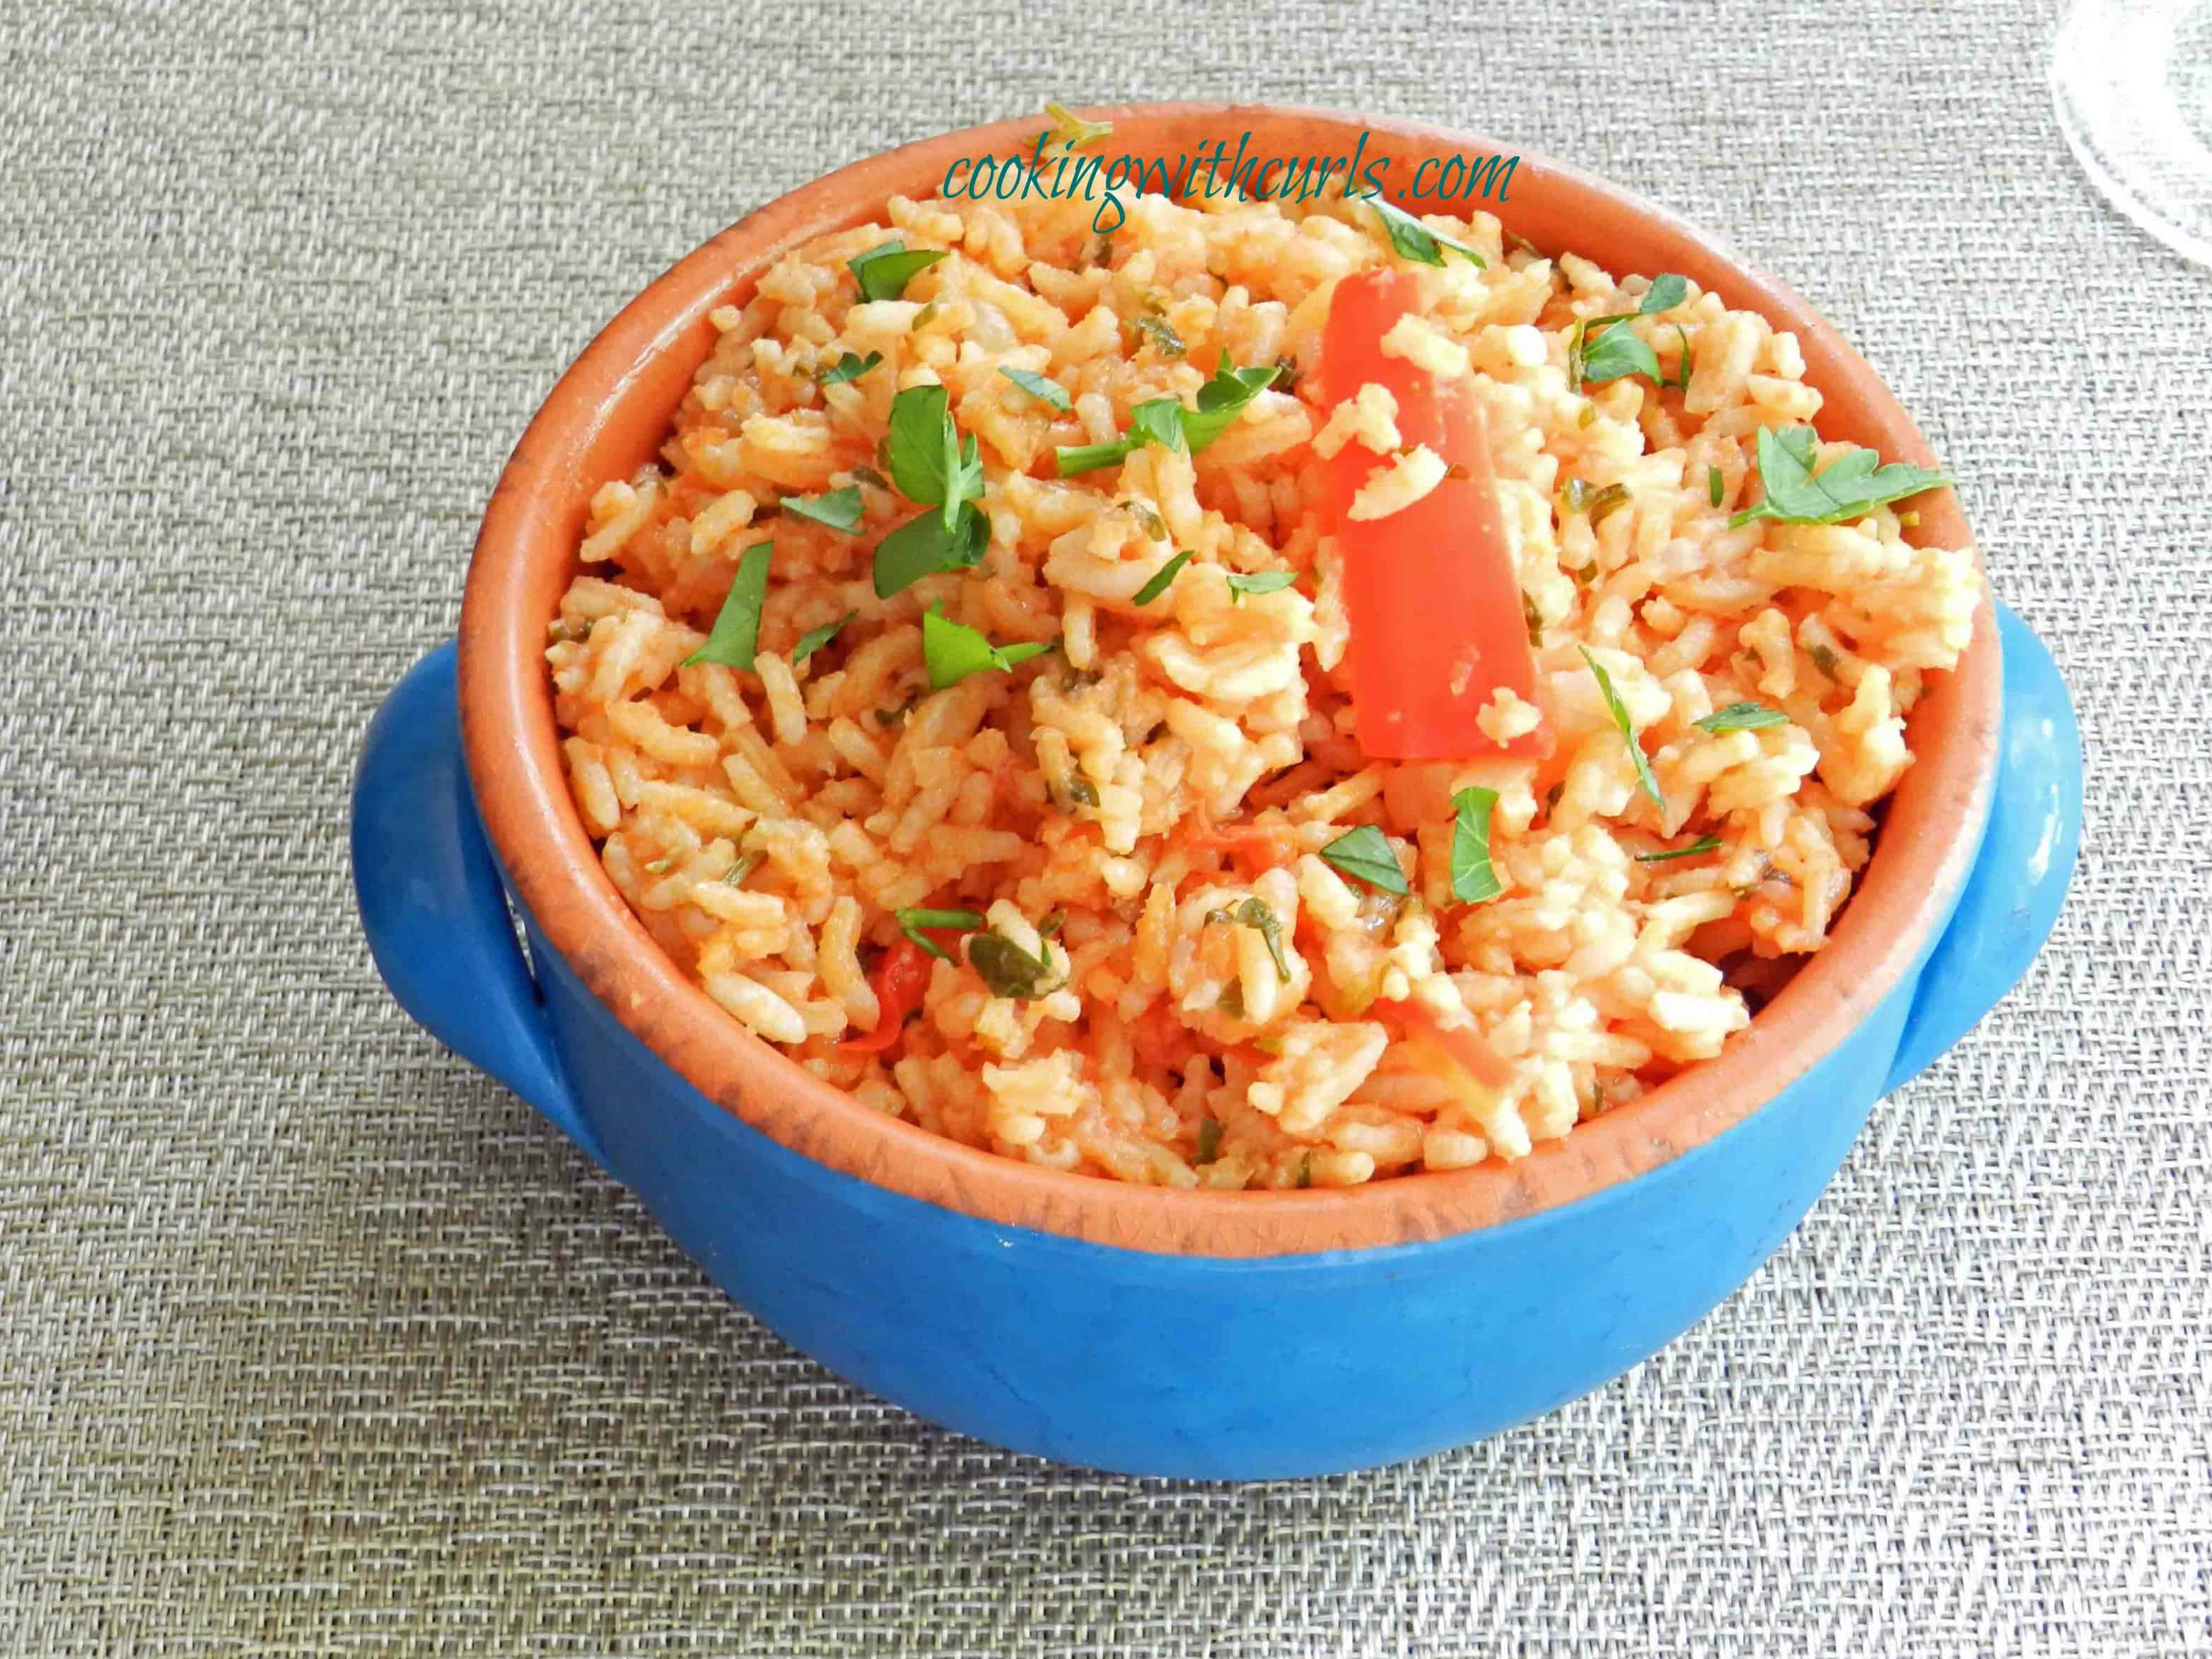 Tomato Pilaf Cooking with Astrology from cookingwithcurls.com